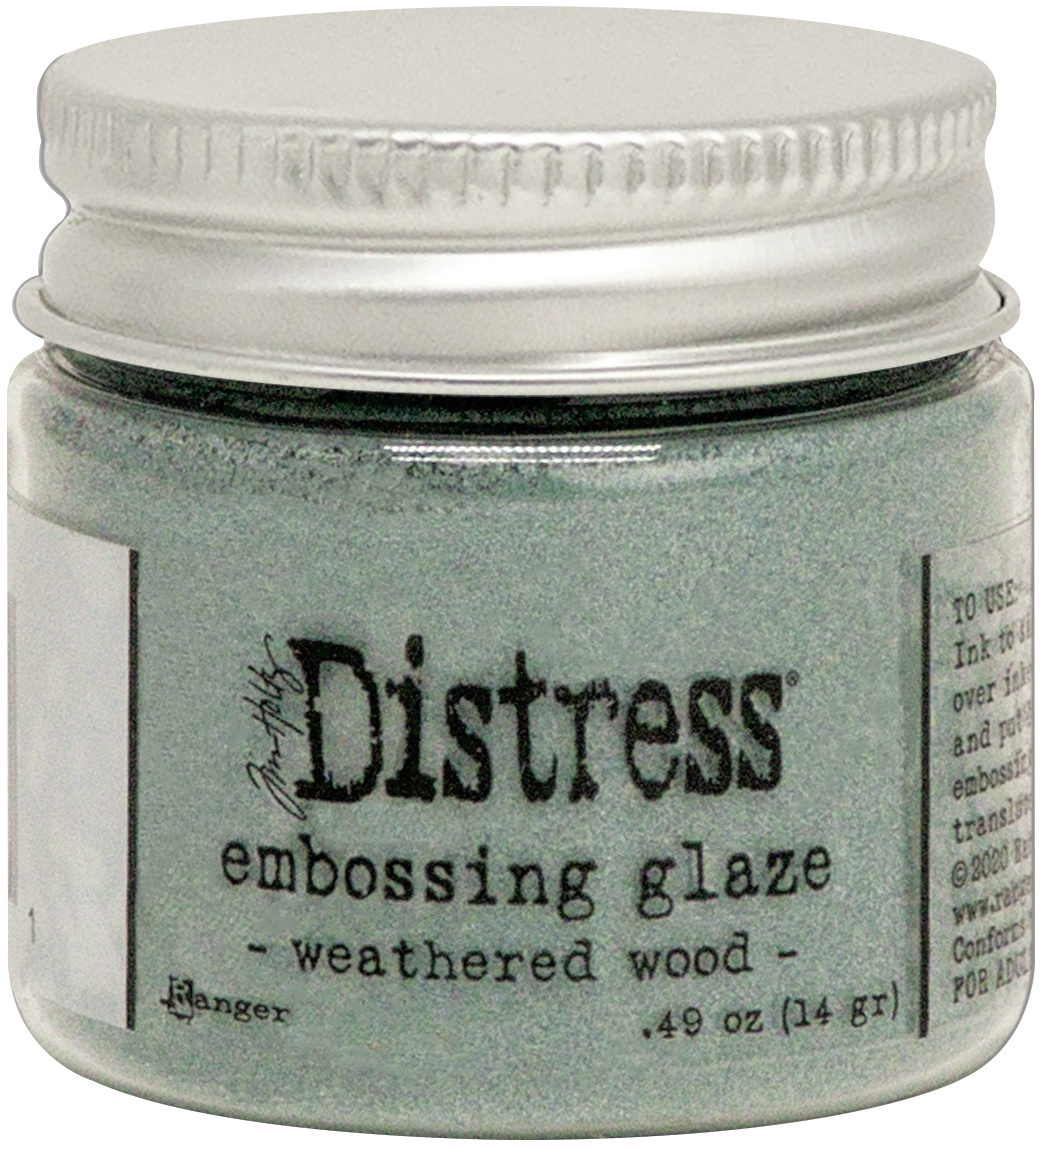 Tim Holtz Distress Embossing Glaze -Weathered Wood